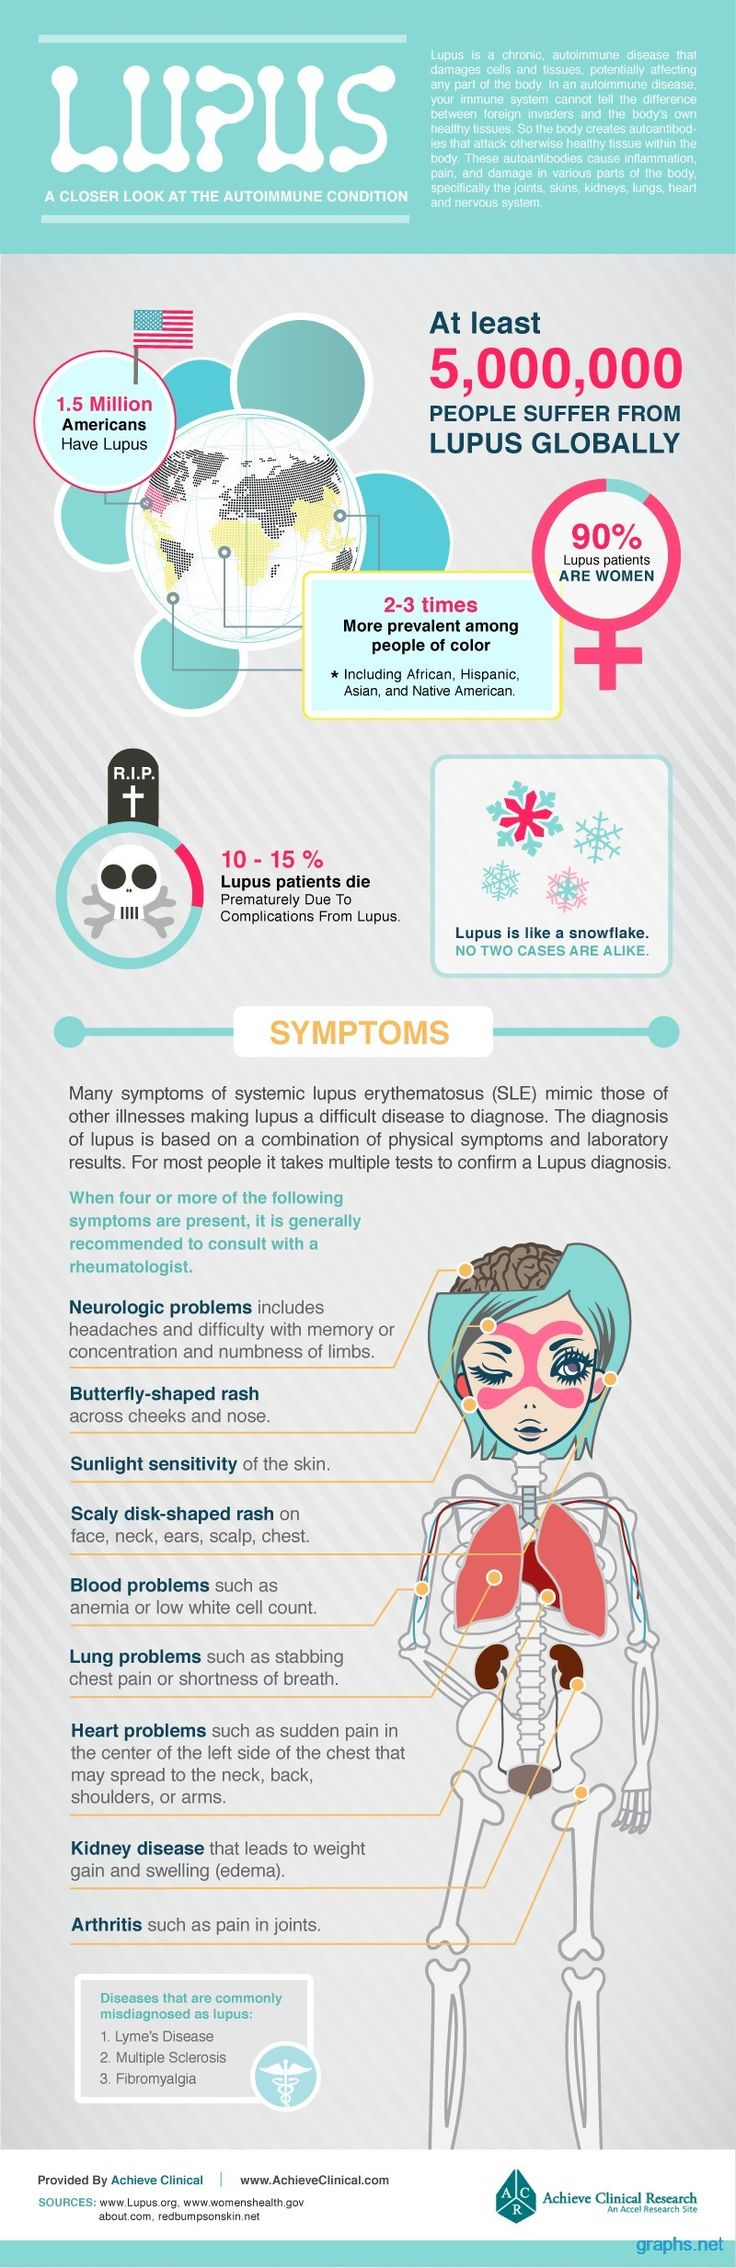 Lupus: Learn about the symptoms, causes, diagnosis, treatment, prevention and management of this medical condition.